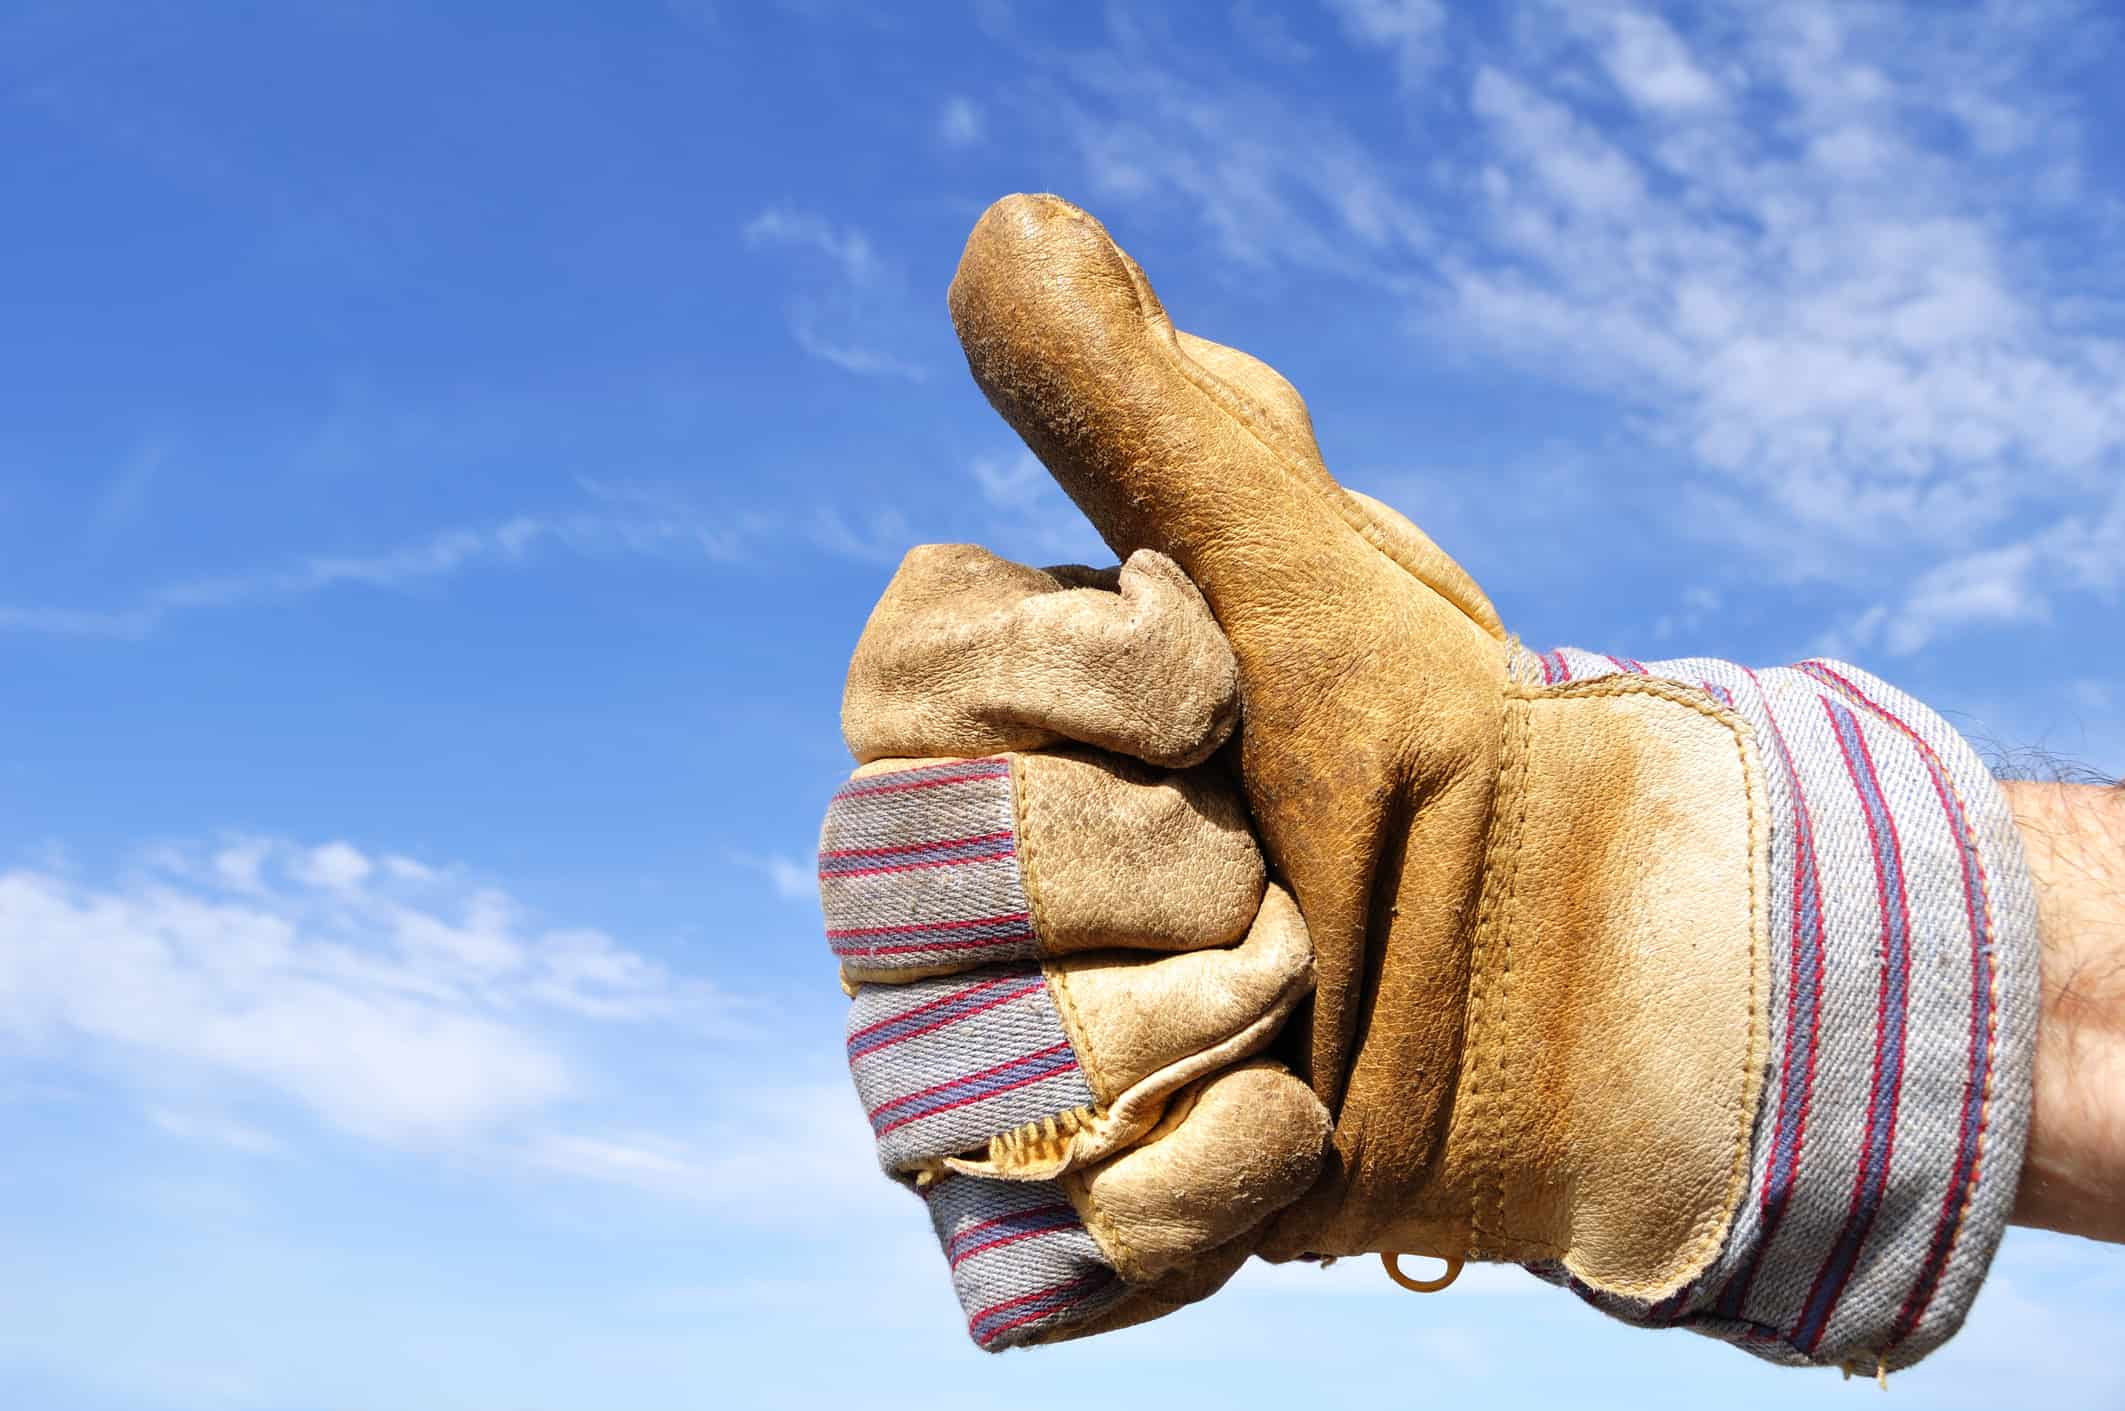 hand in leather work glove giving thumbs up